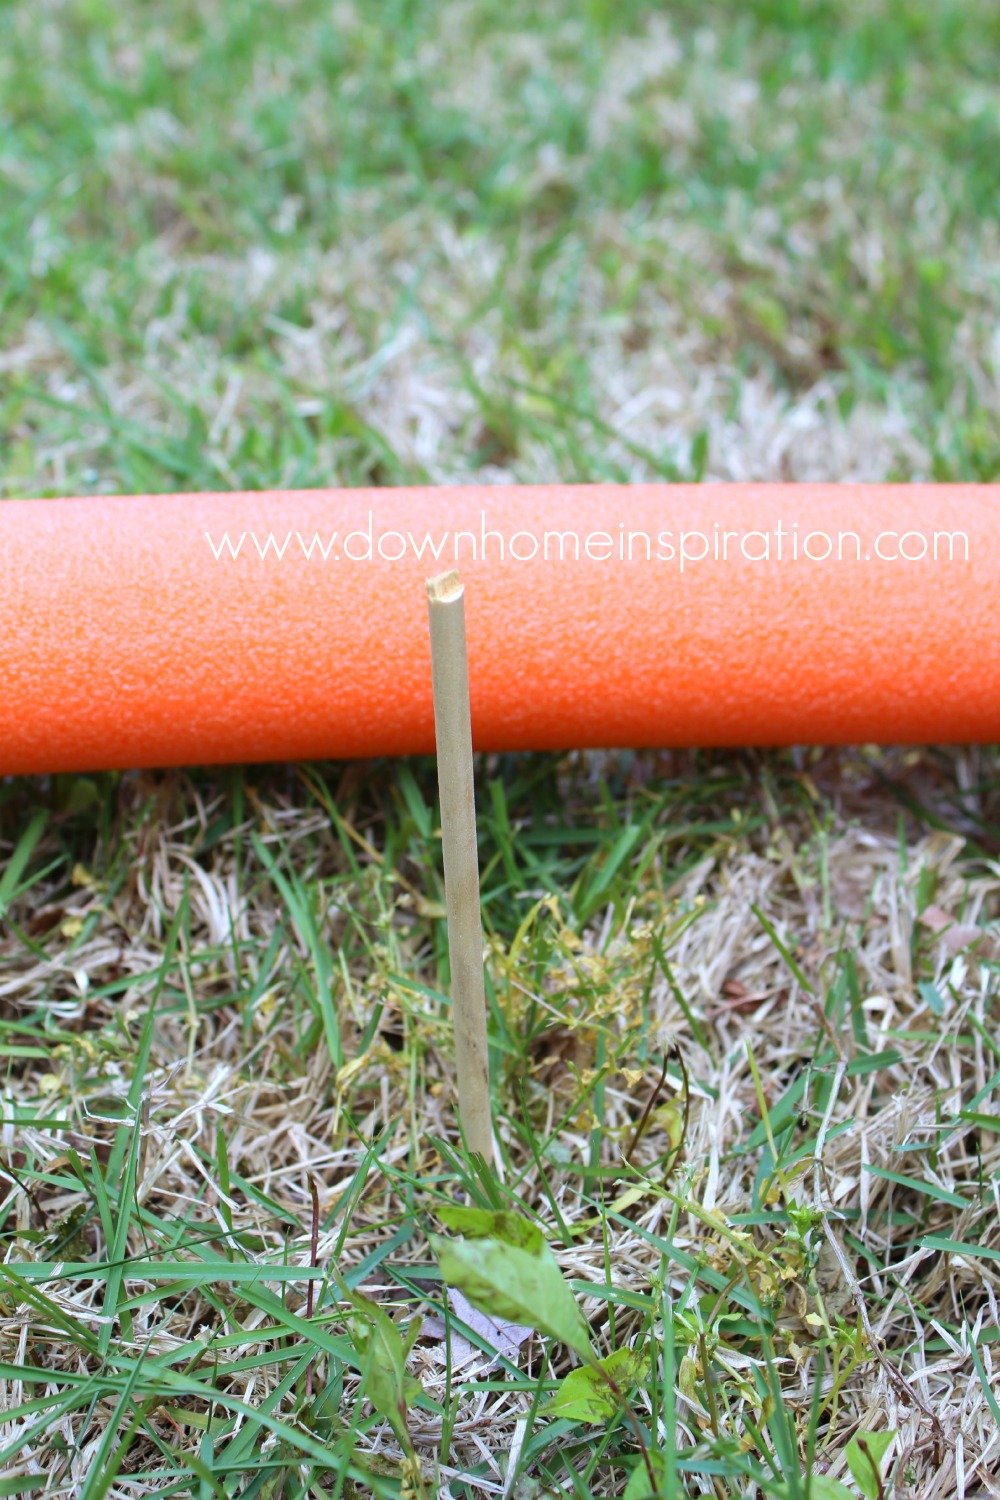 pool-noodle-croquet-2